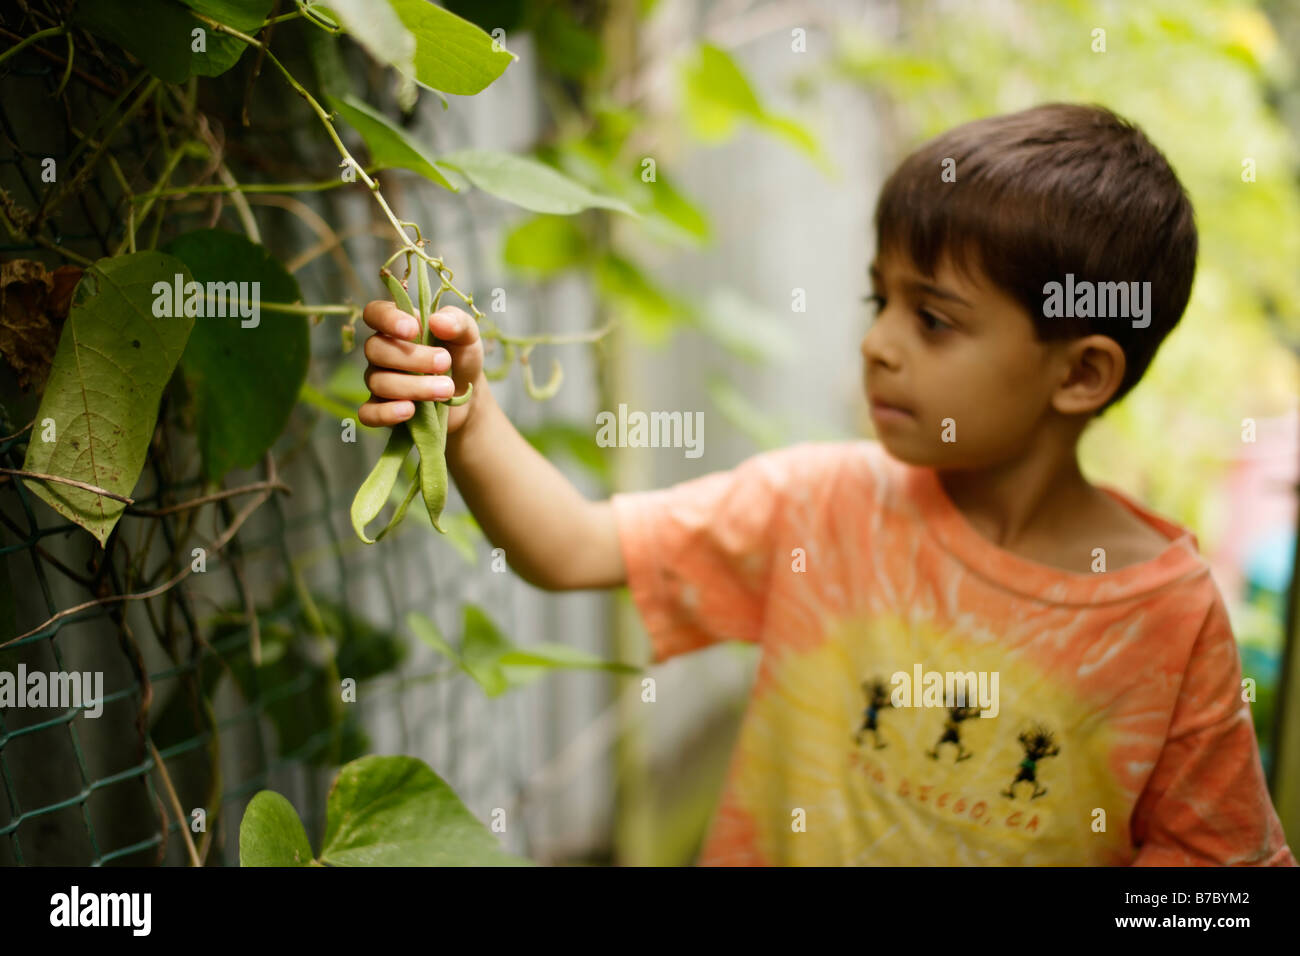 Six year old boy picks green beans in garden vegetable patch - Stock Image